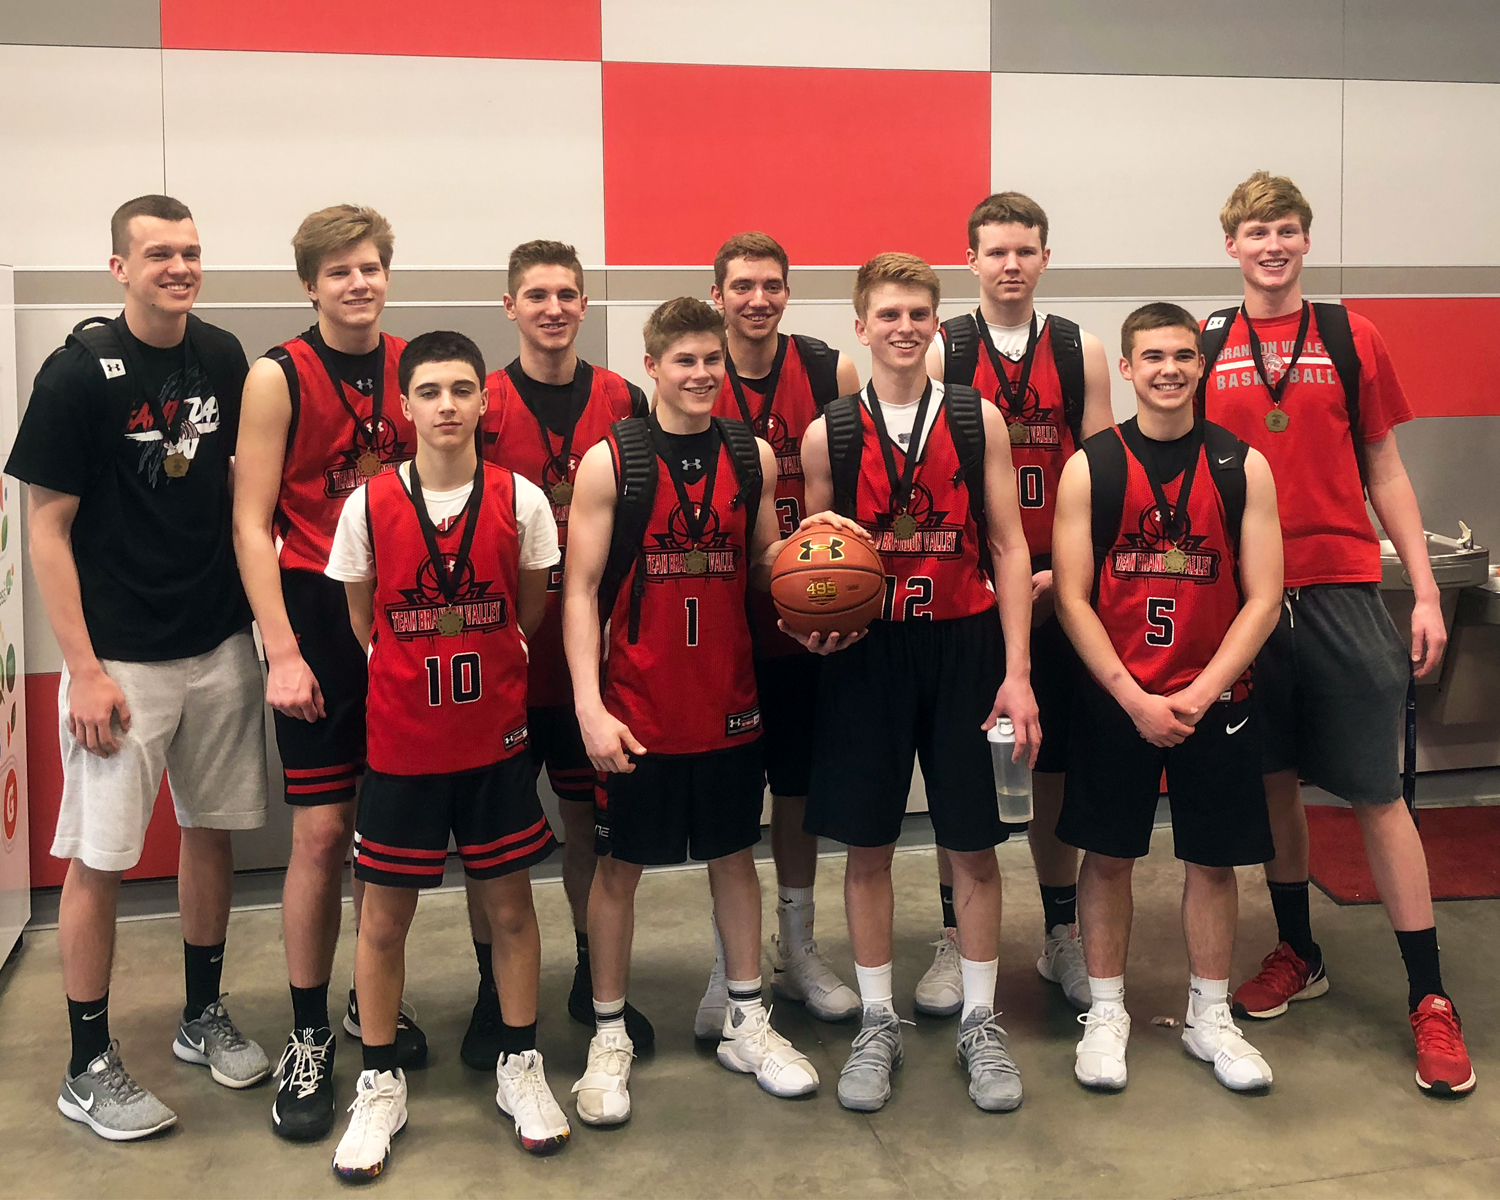 The Team Brandon Valley varsity players earned a first place finish at the Omaha Sports Academy tournament last weekend.